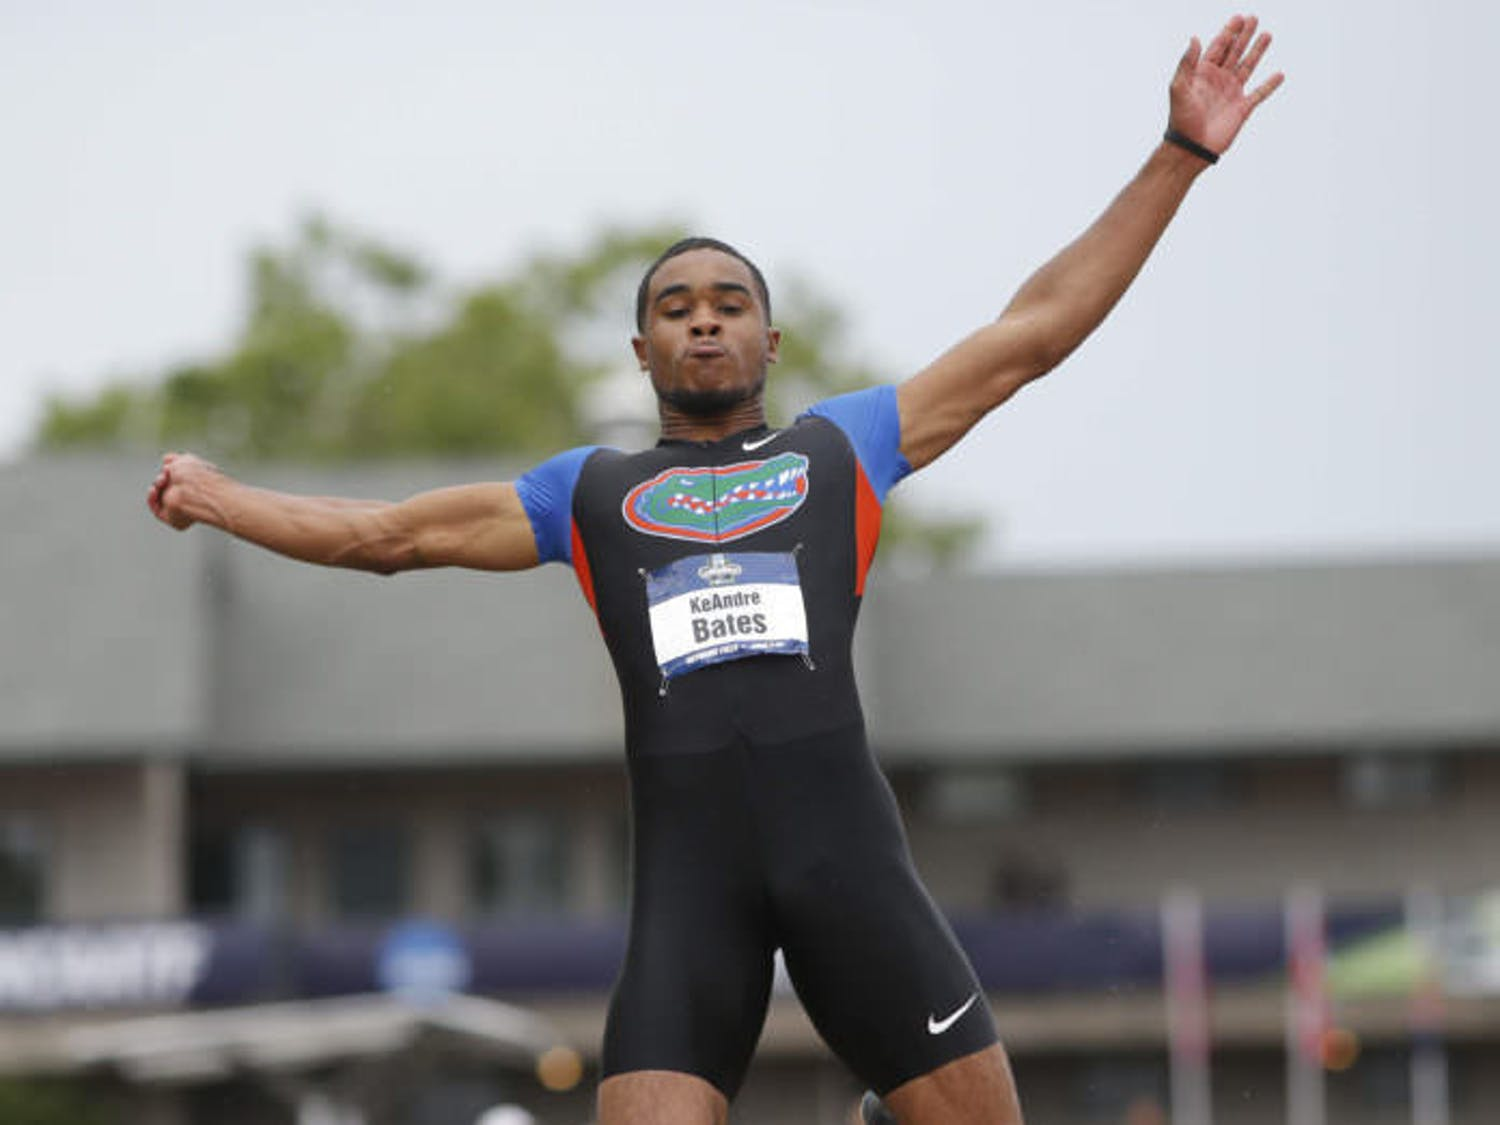 Senior KeAndre Bates is the reigning national champion in both the triple jump and the long jump. Bates will defend his title this week at the NCAA Outdoor Championships in Eugene, Oregon, starting Wednesday.